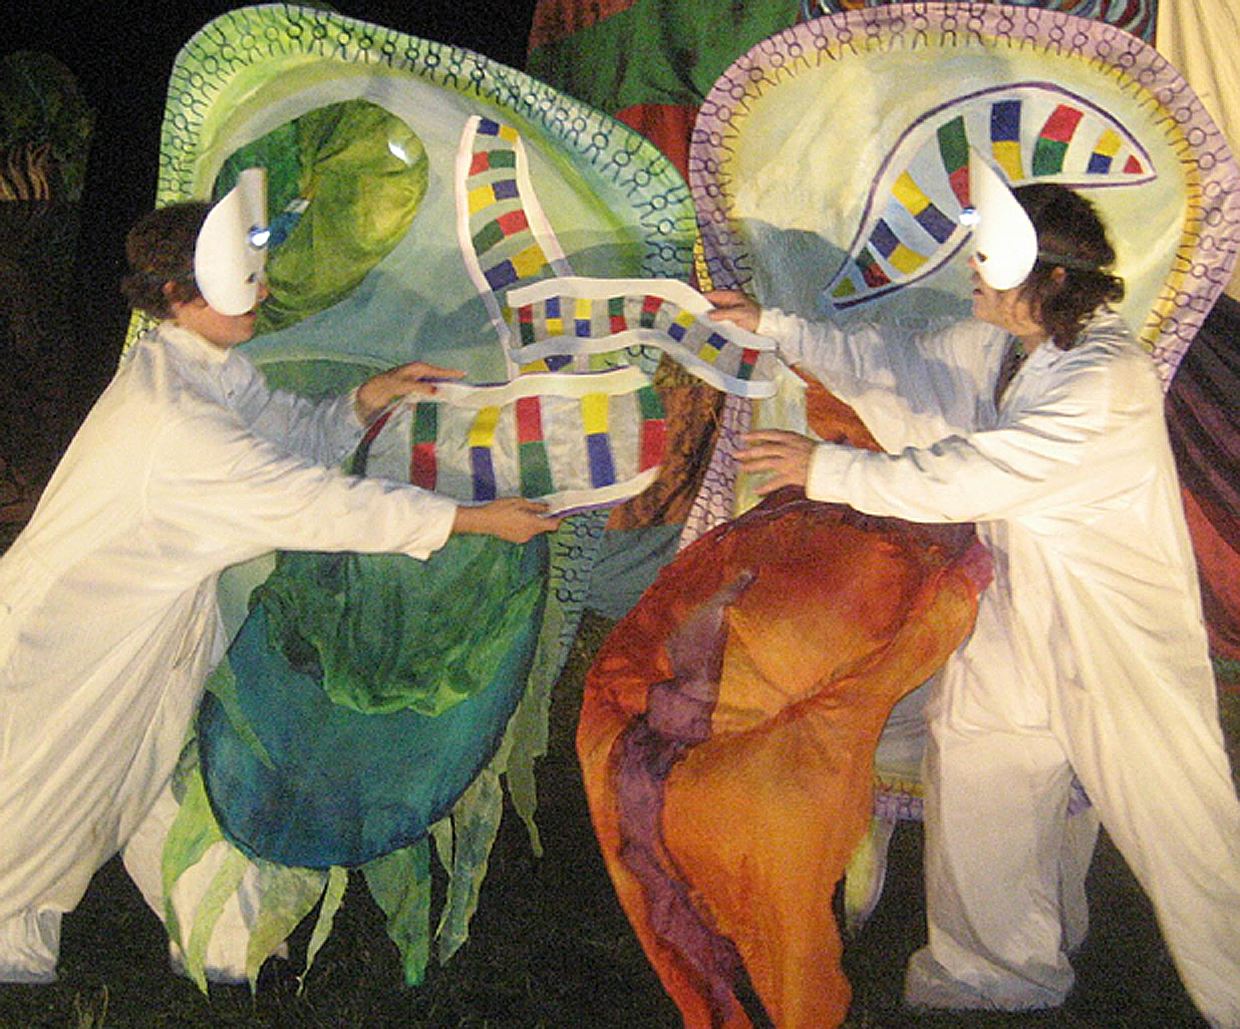 DNA Exchange from the 2007 Puppet Suite, photo by Fionn Reilly